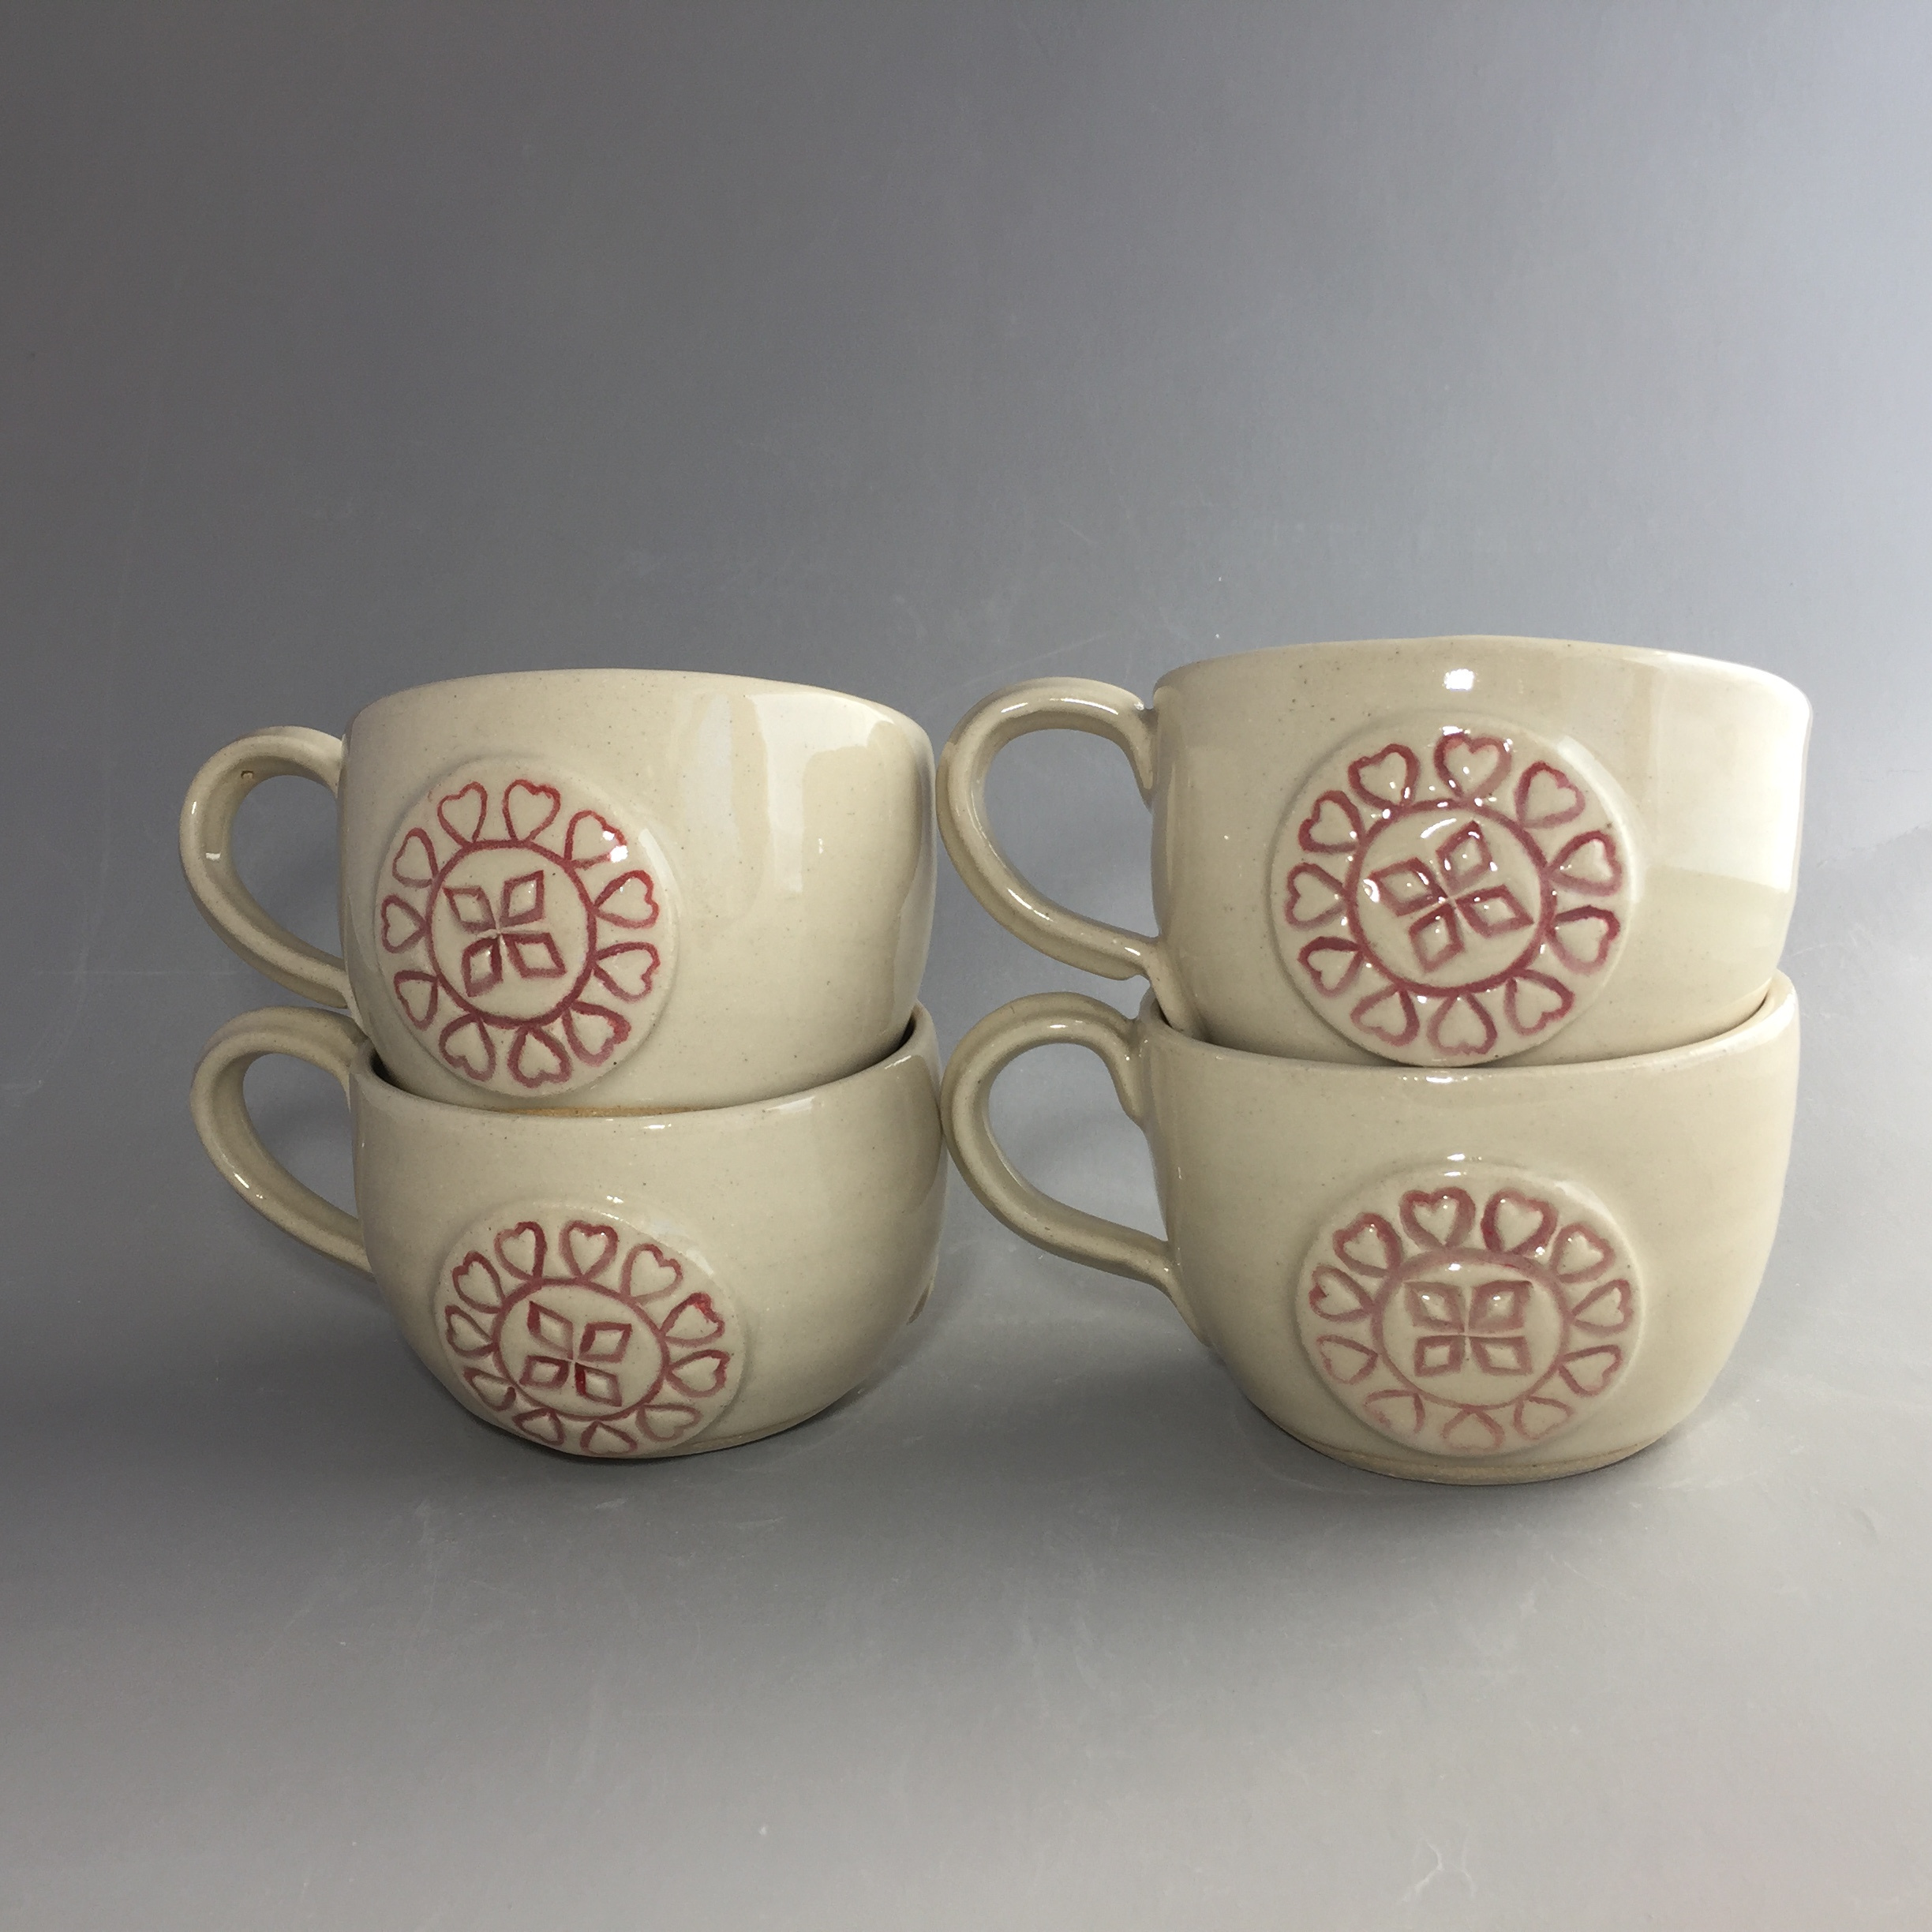 Heart Soup Mugs